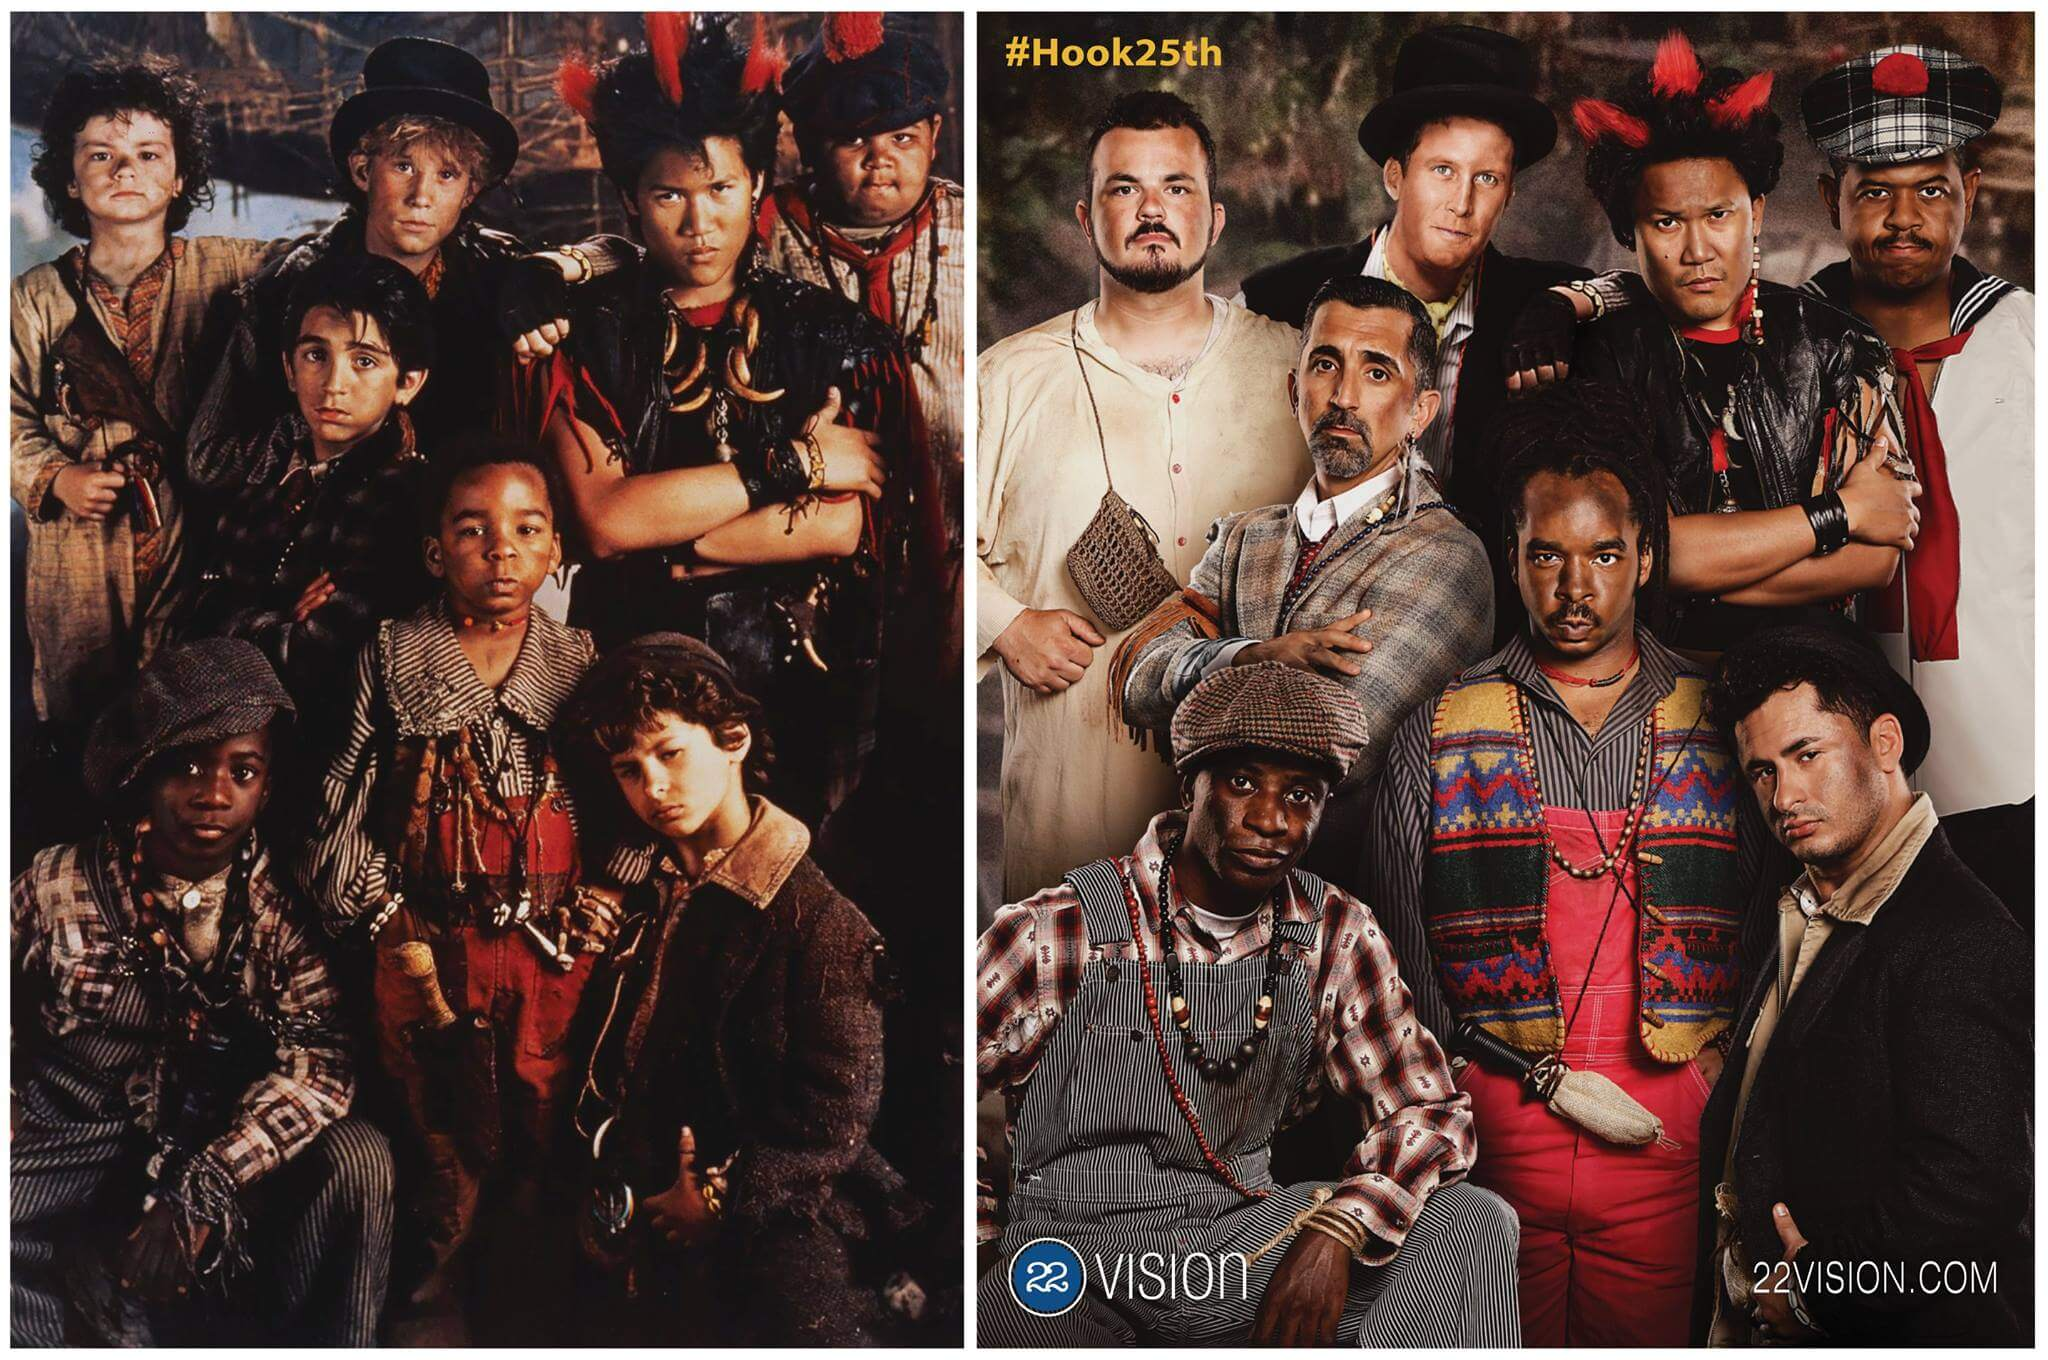 The Lost Boys then and now.